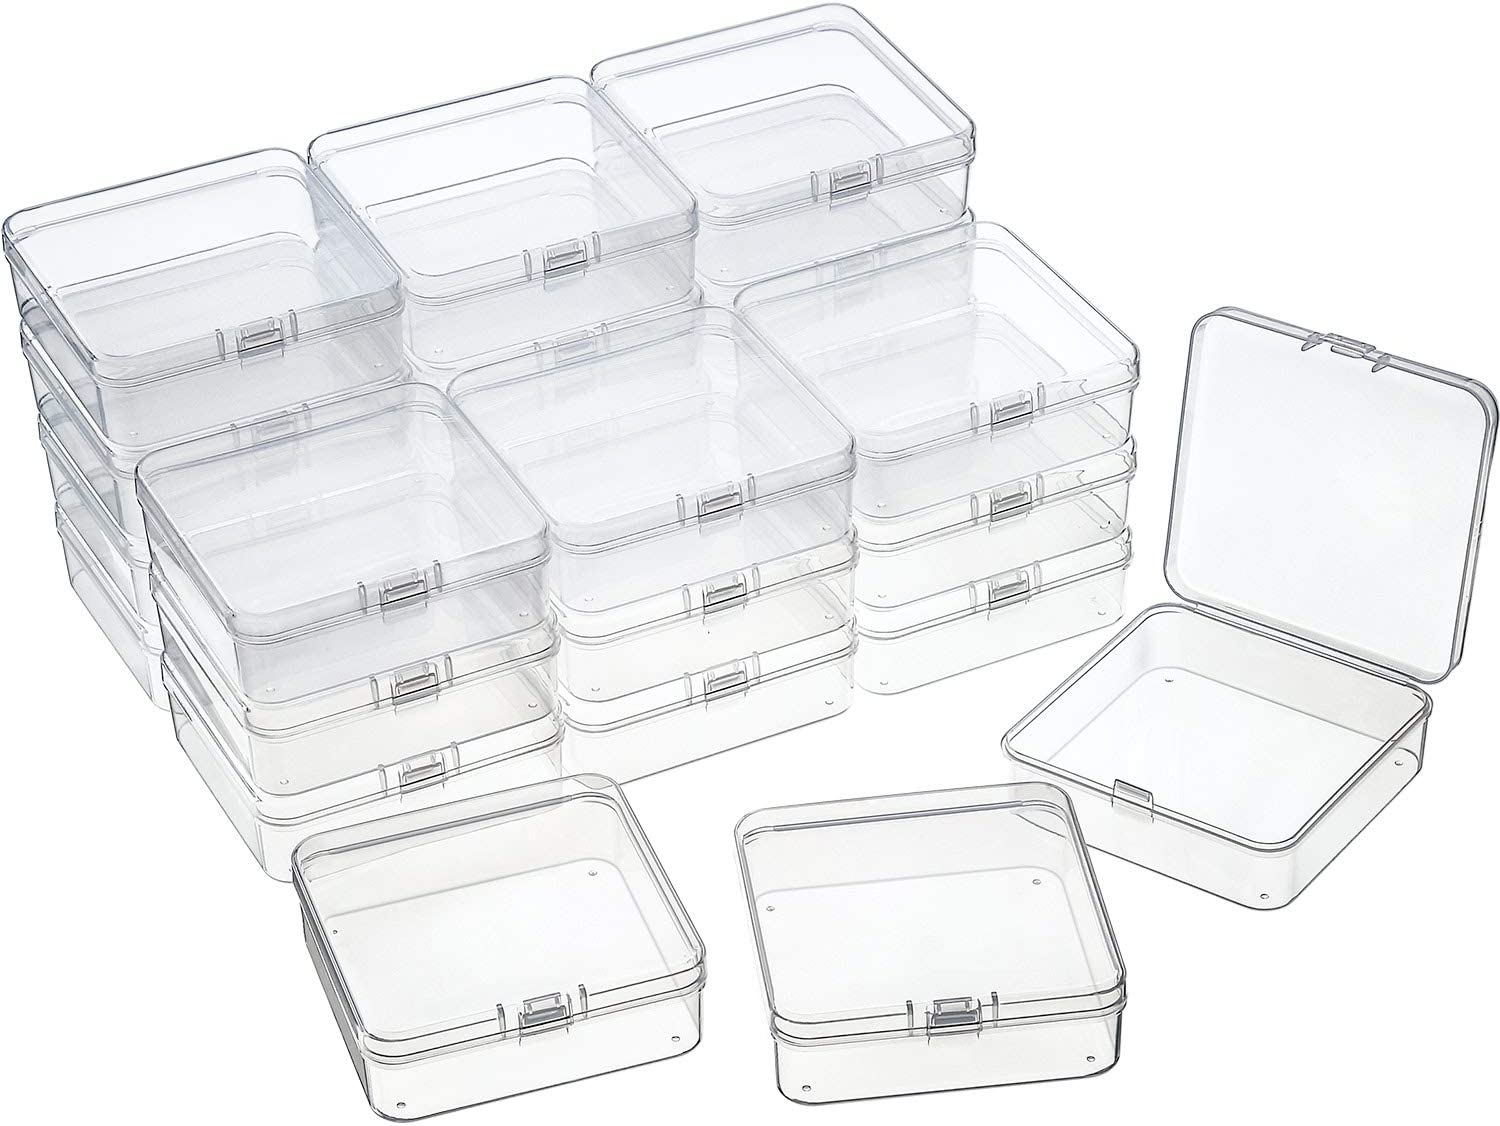 24 Packs Small Clear Plastic Beads Storage Containers Box with Hinged Lid for Storage of Small Items, Crafts, Jewelry, Hardware(2.9 x 2.9 x 1 Inches)